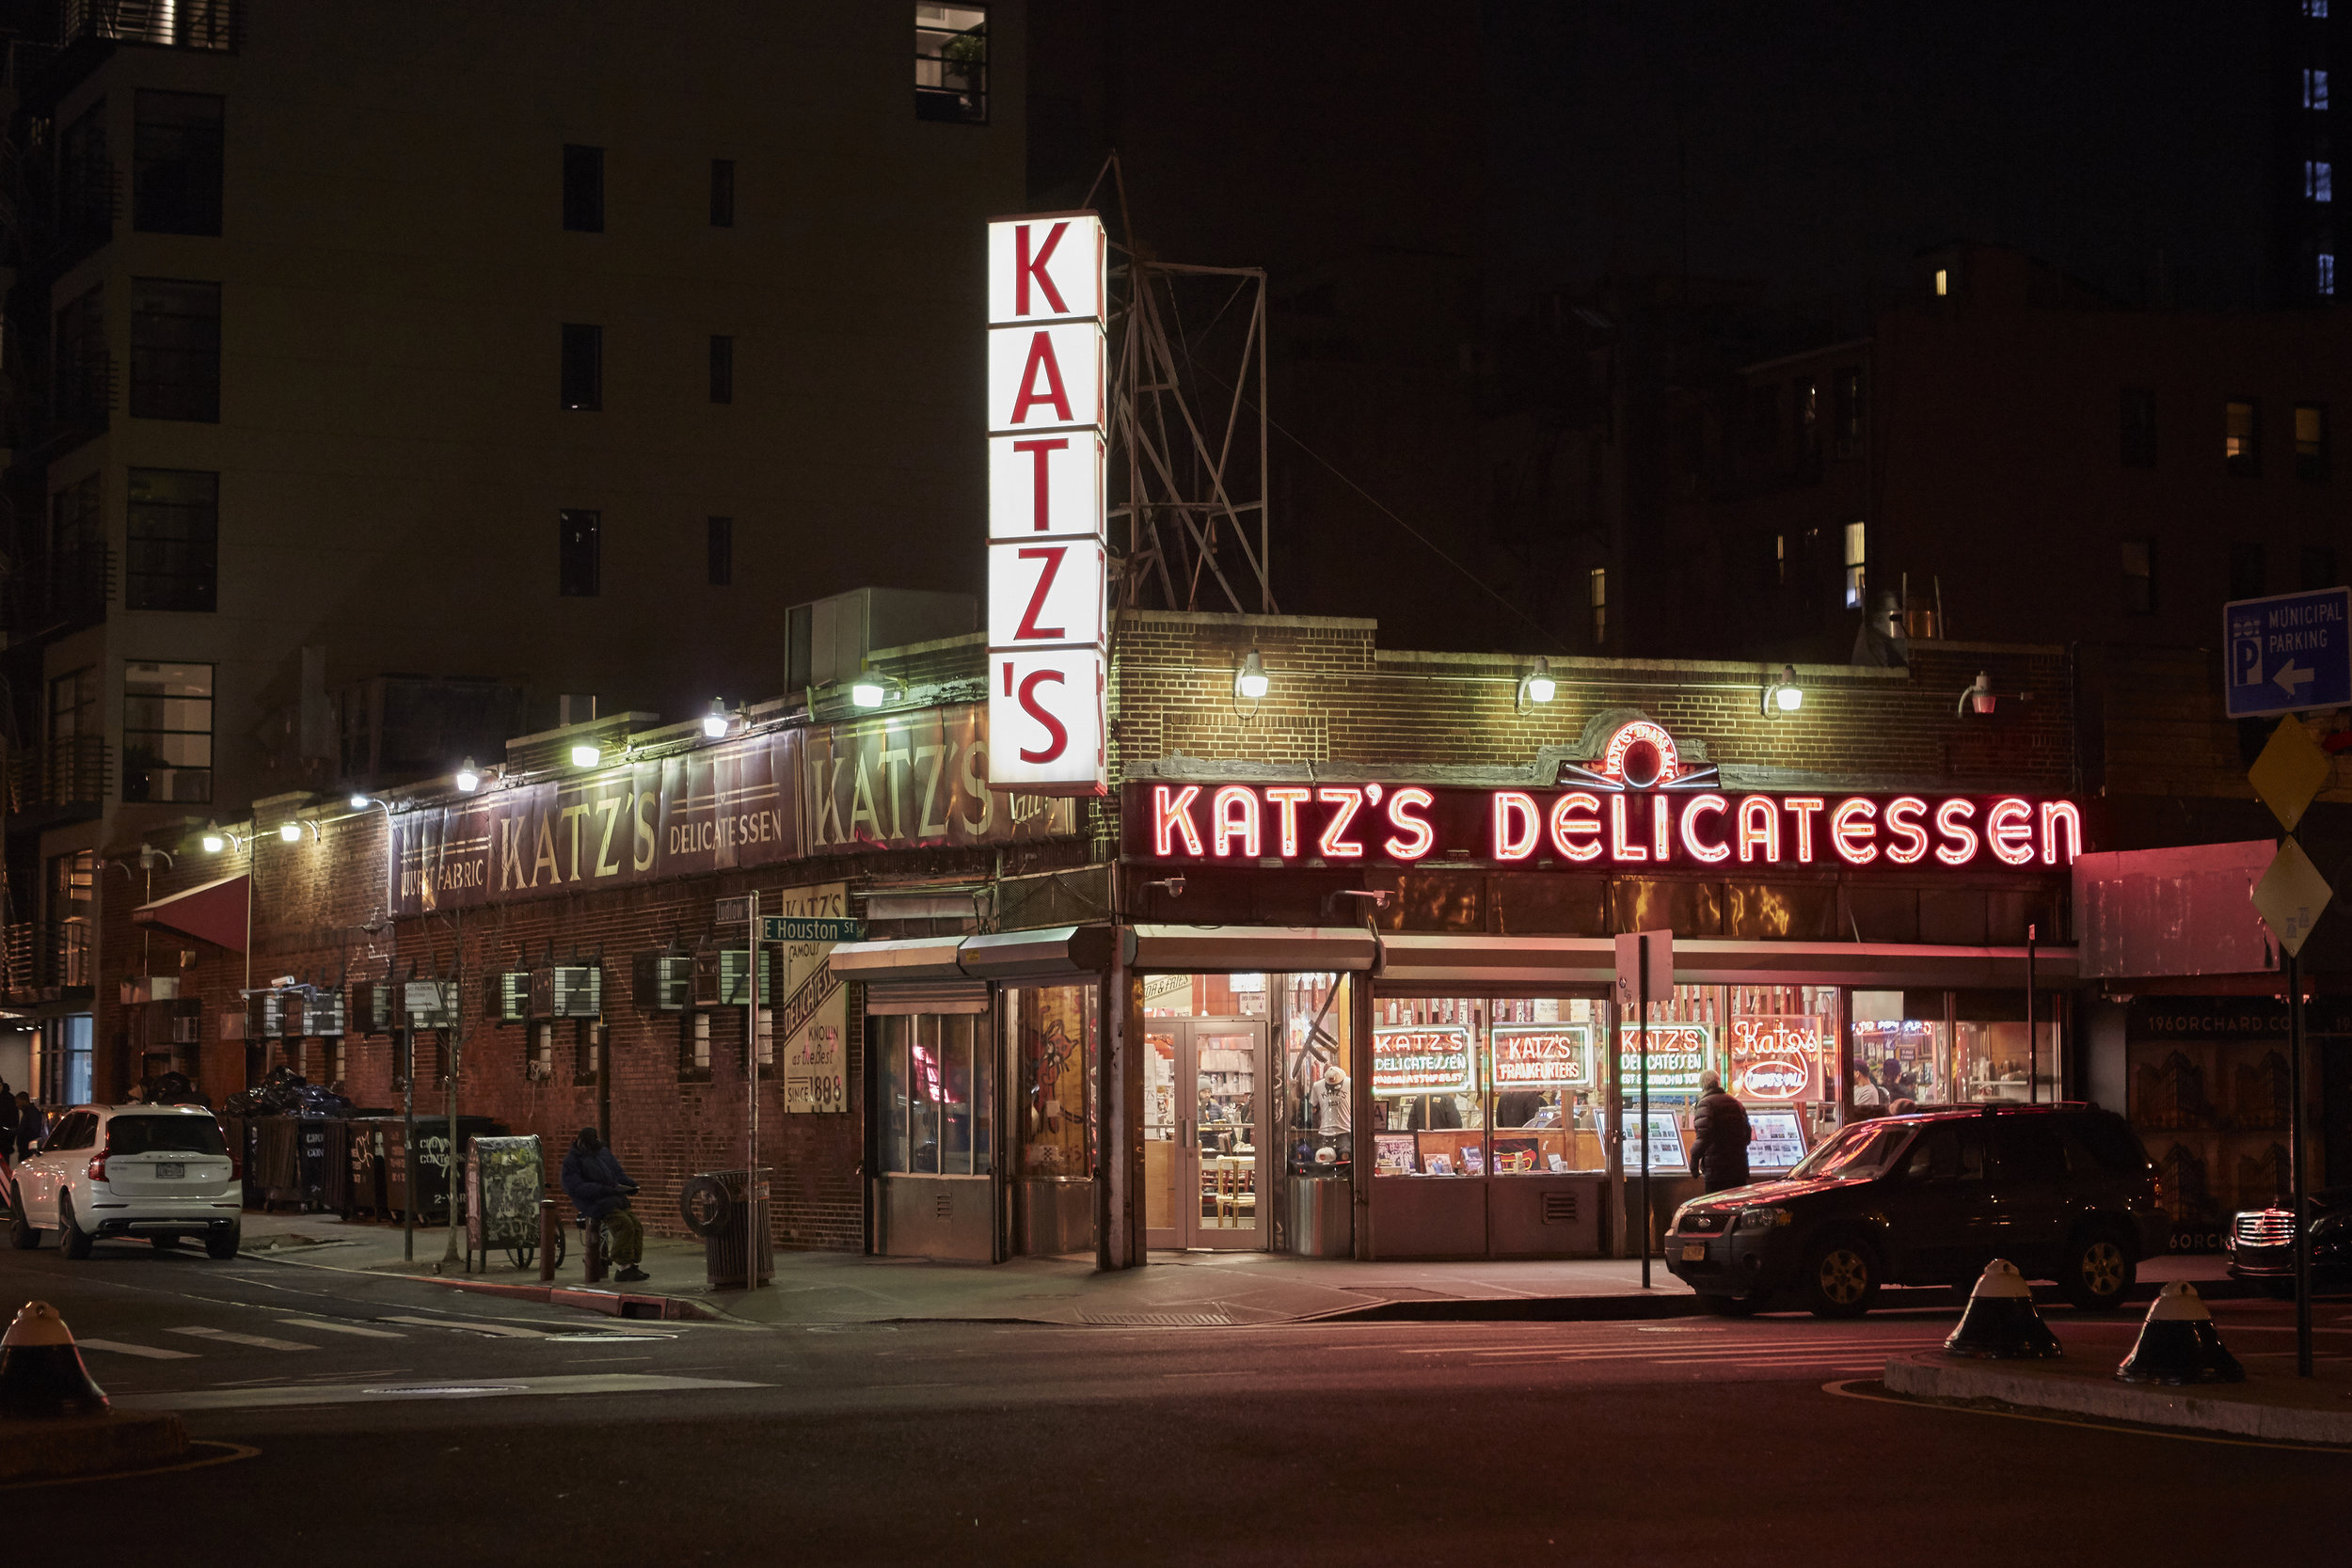 travel photography new york city nyc editorial commercial big apple tourism katz delicatessen deli